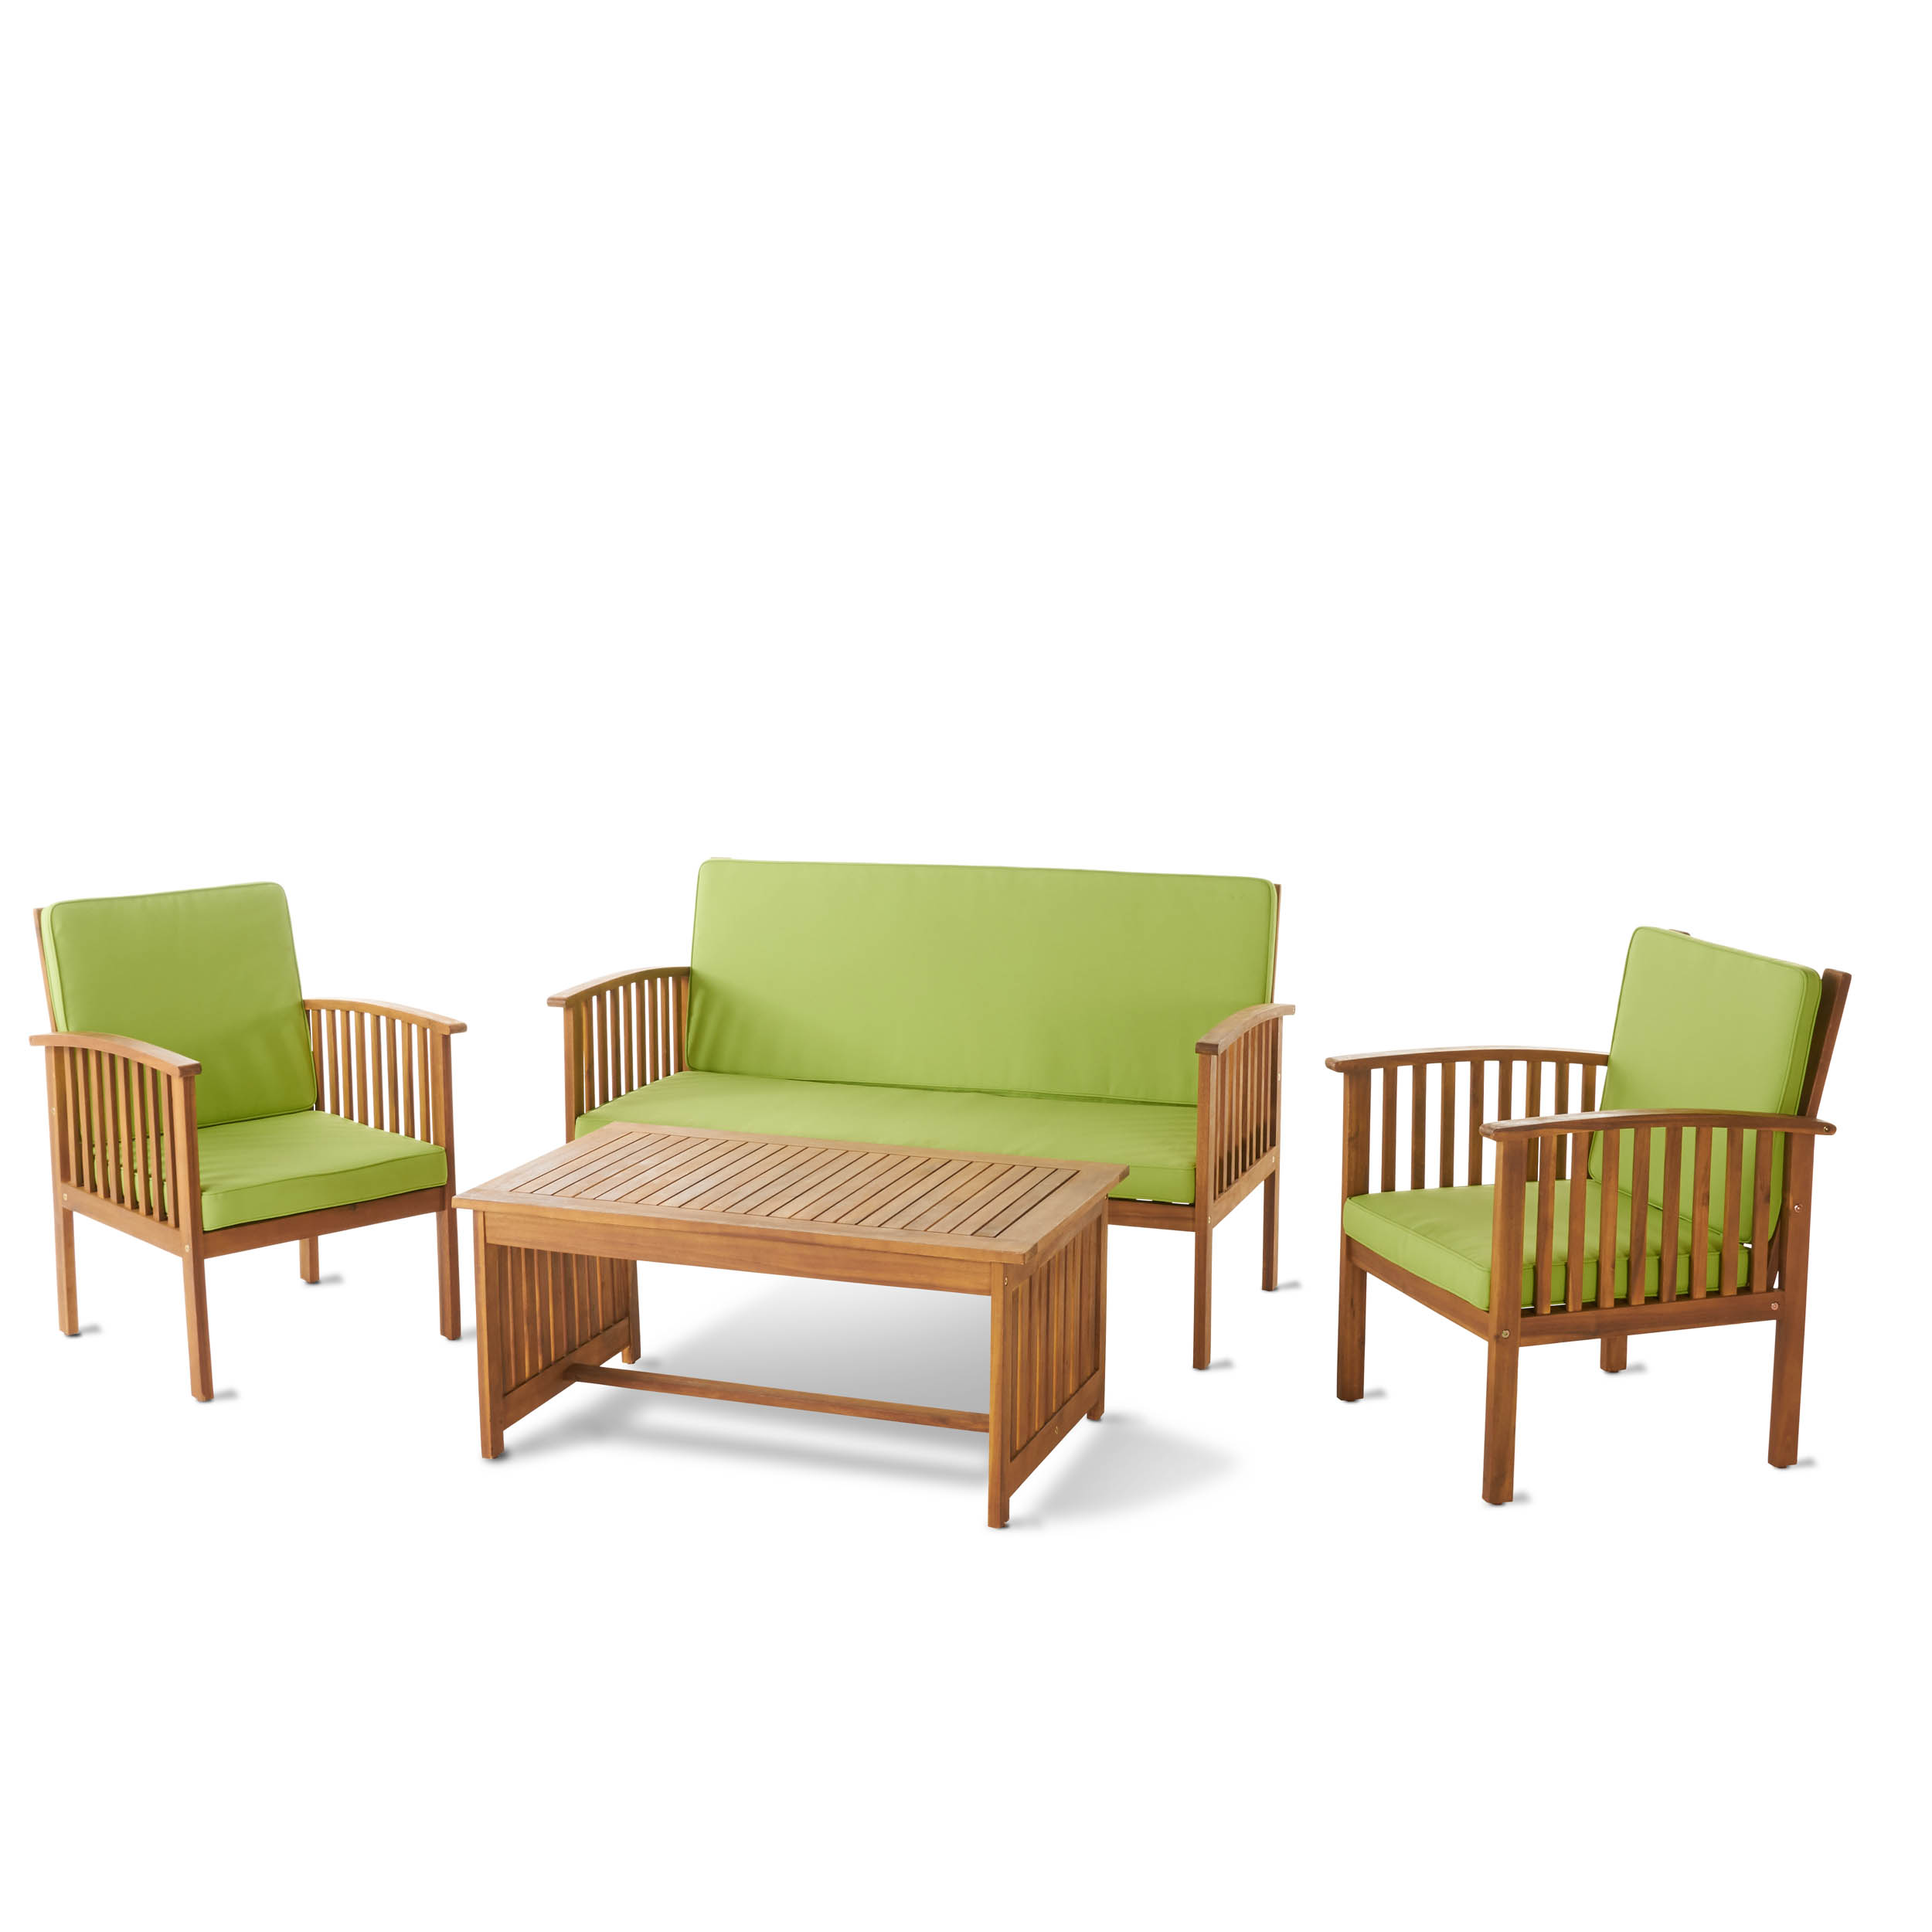 Merveilleux Caresta Outdoor 4 Piece Acacia Wood Sofa Set With Water Resistant Cushions,  Brown Patina And Light Green